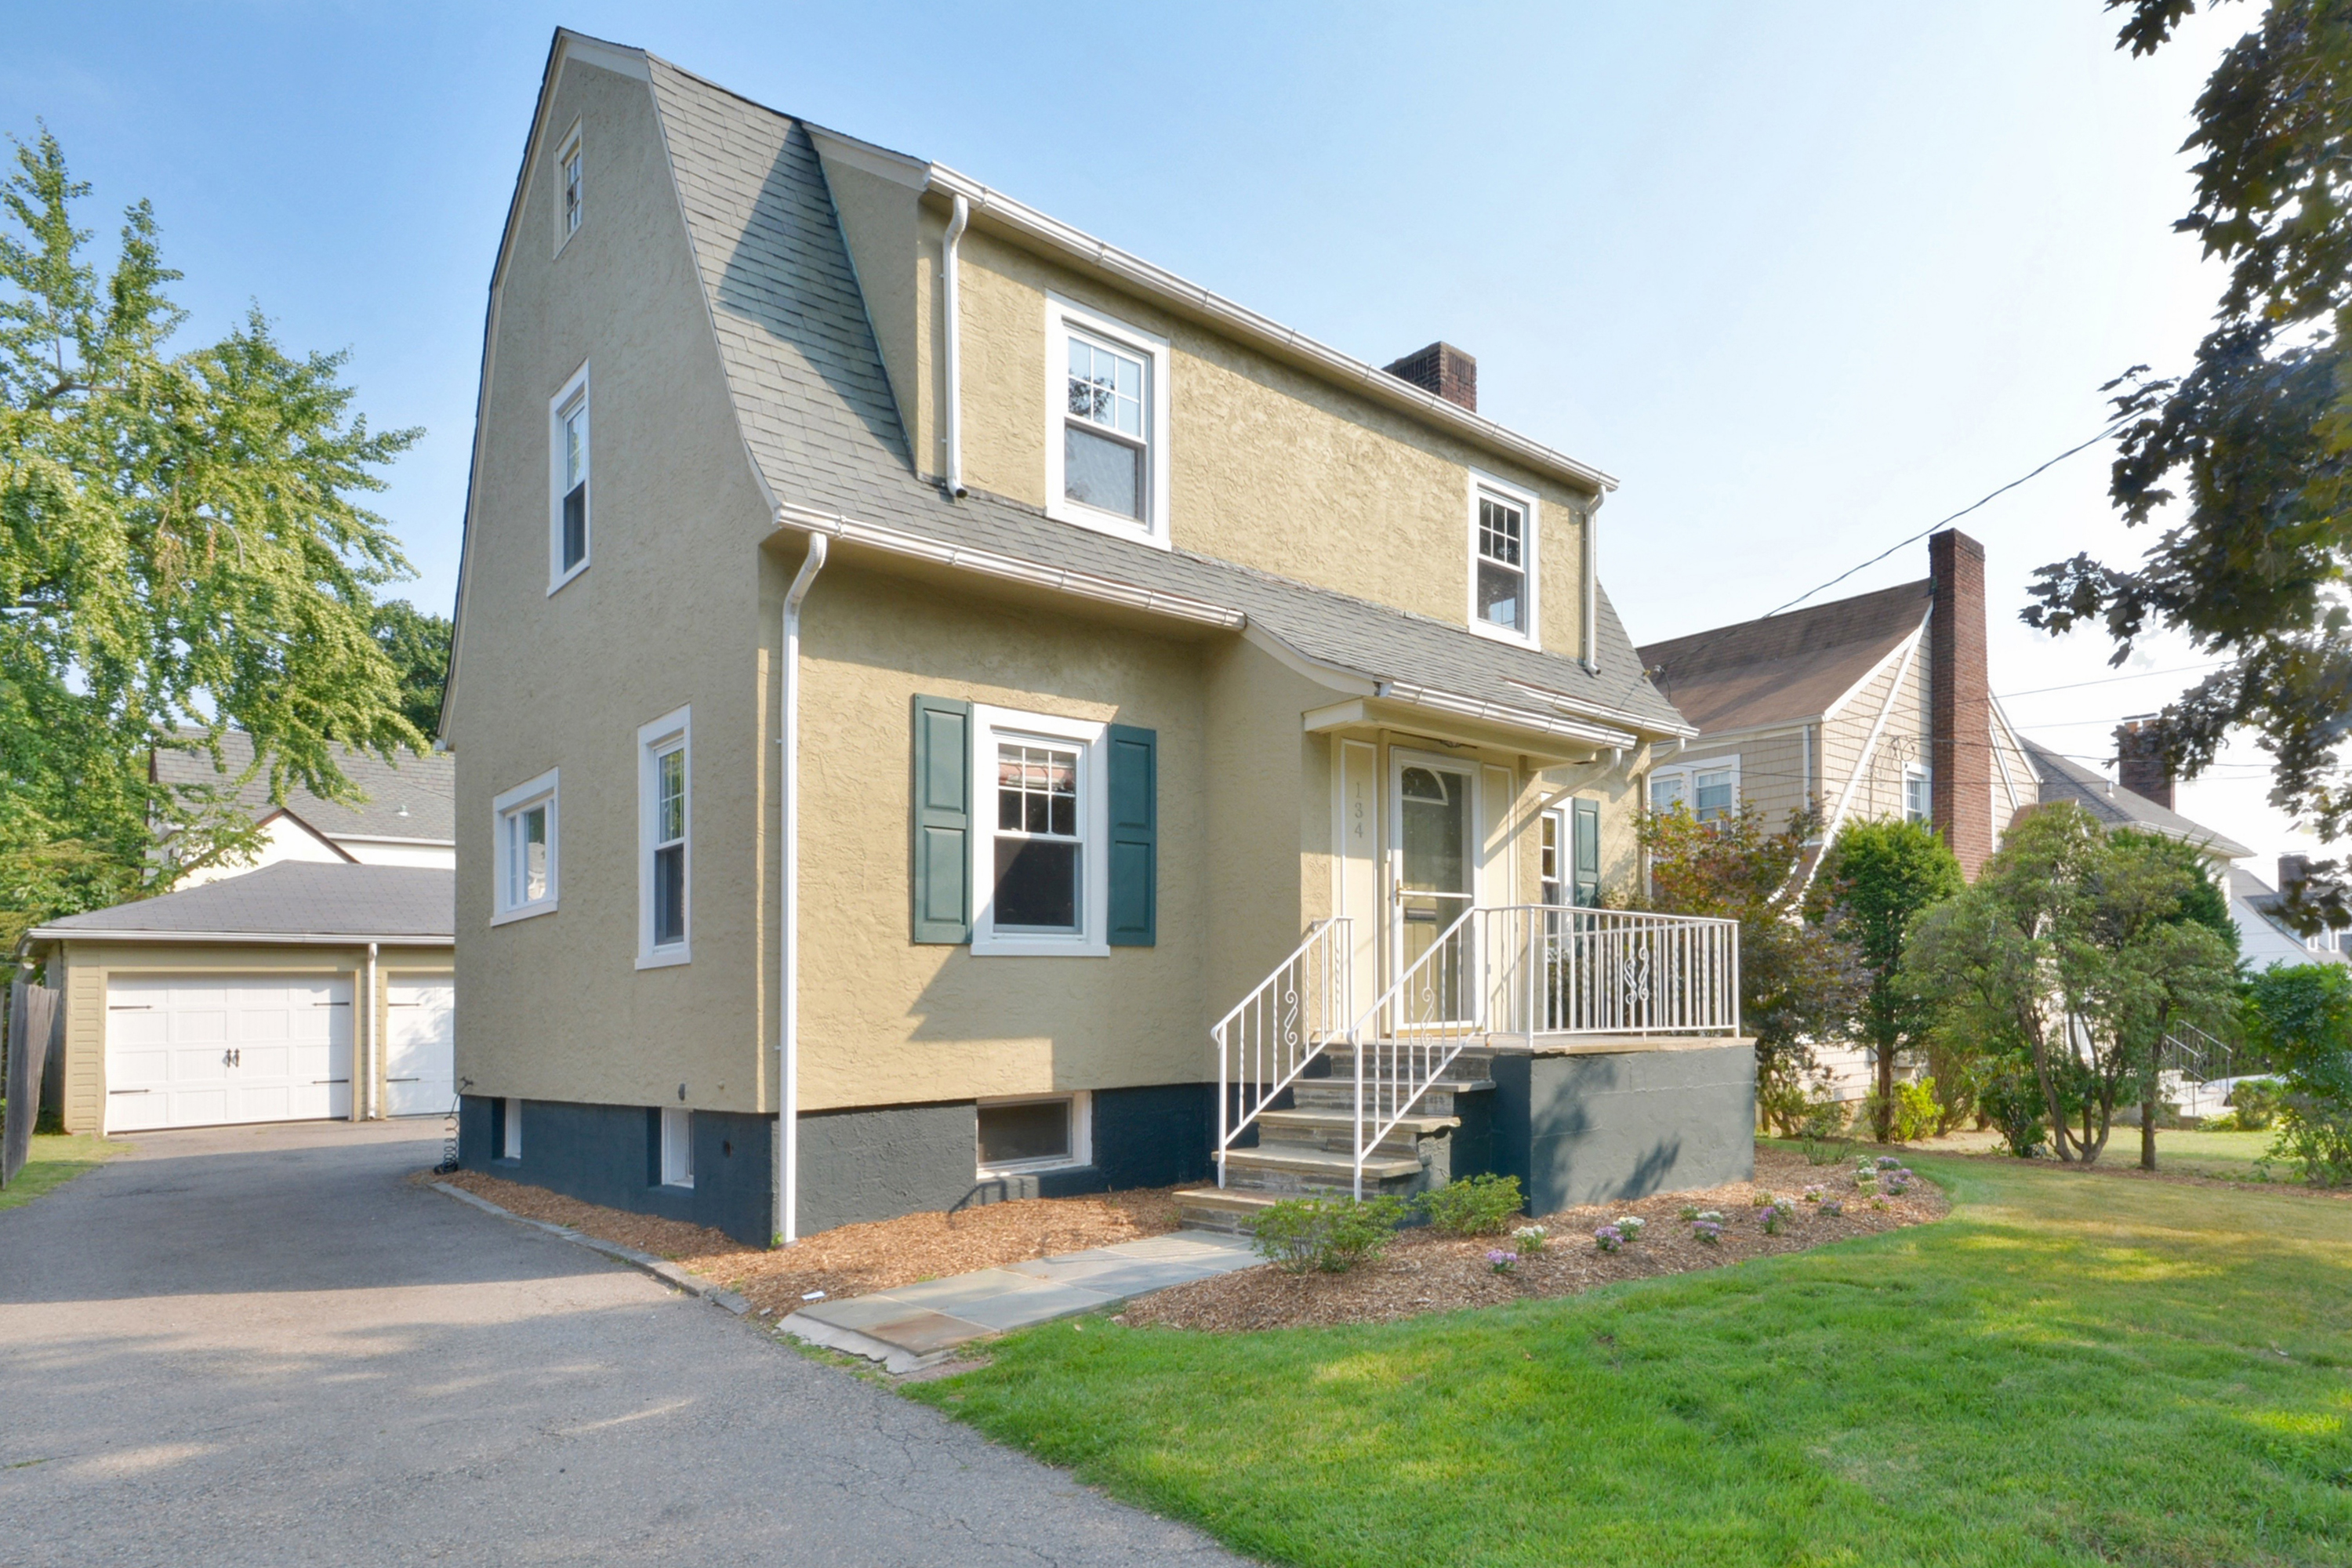 Single Family Home for Sale at Renovated Three Bedroom Colonial 134 Bradley Road Scarsdale, New York 10583 United States